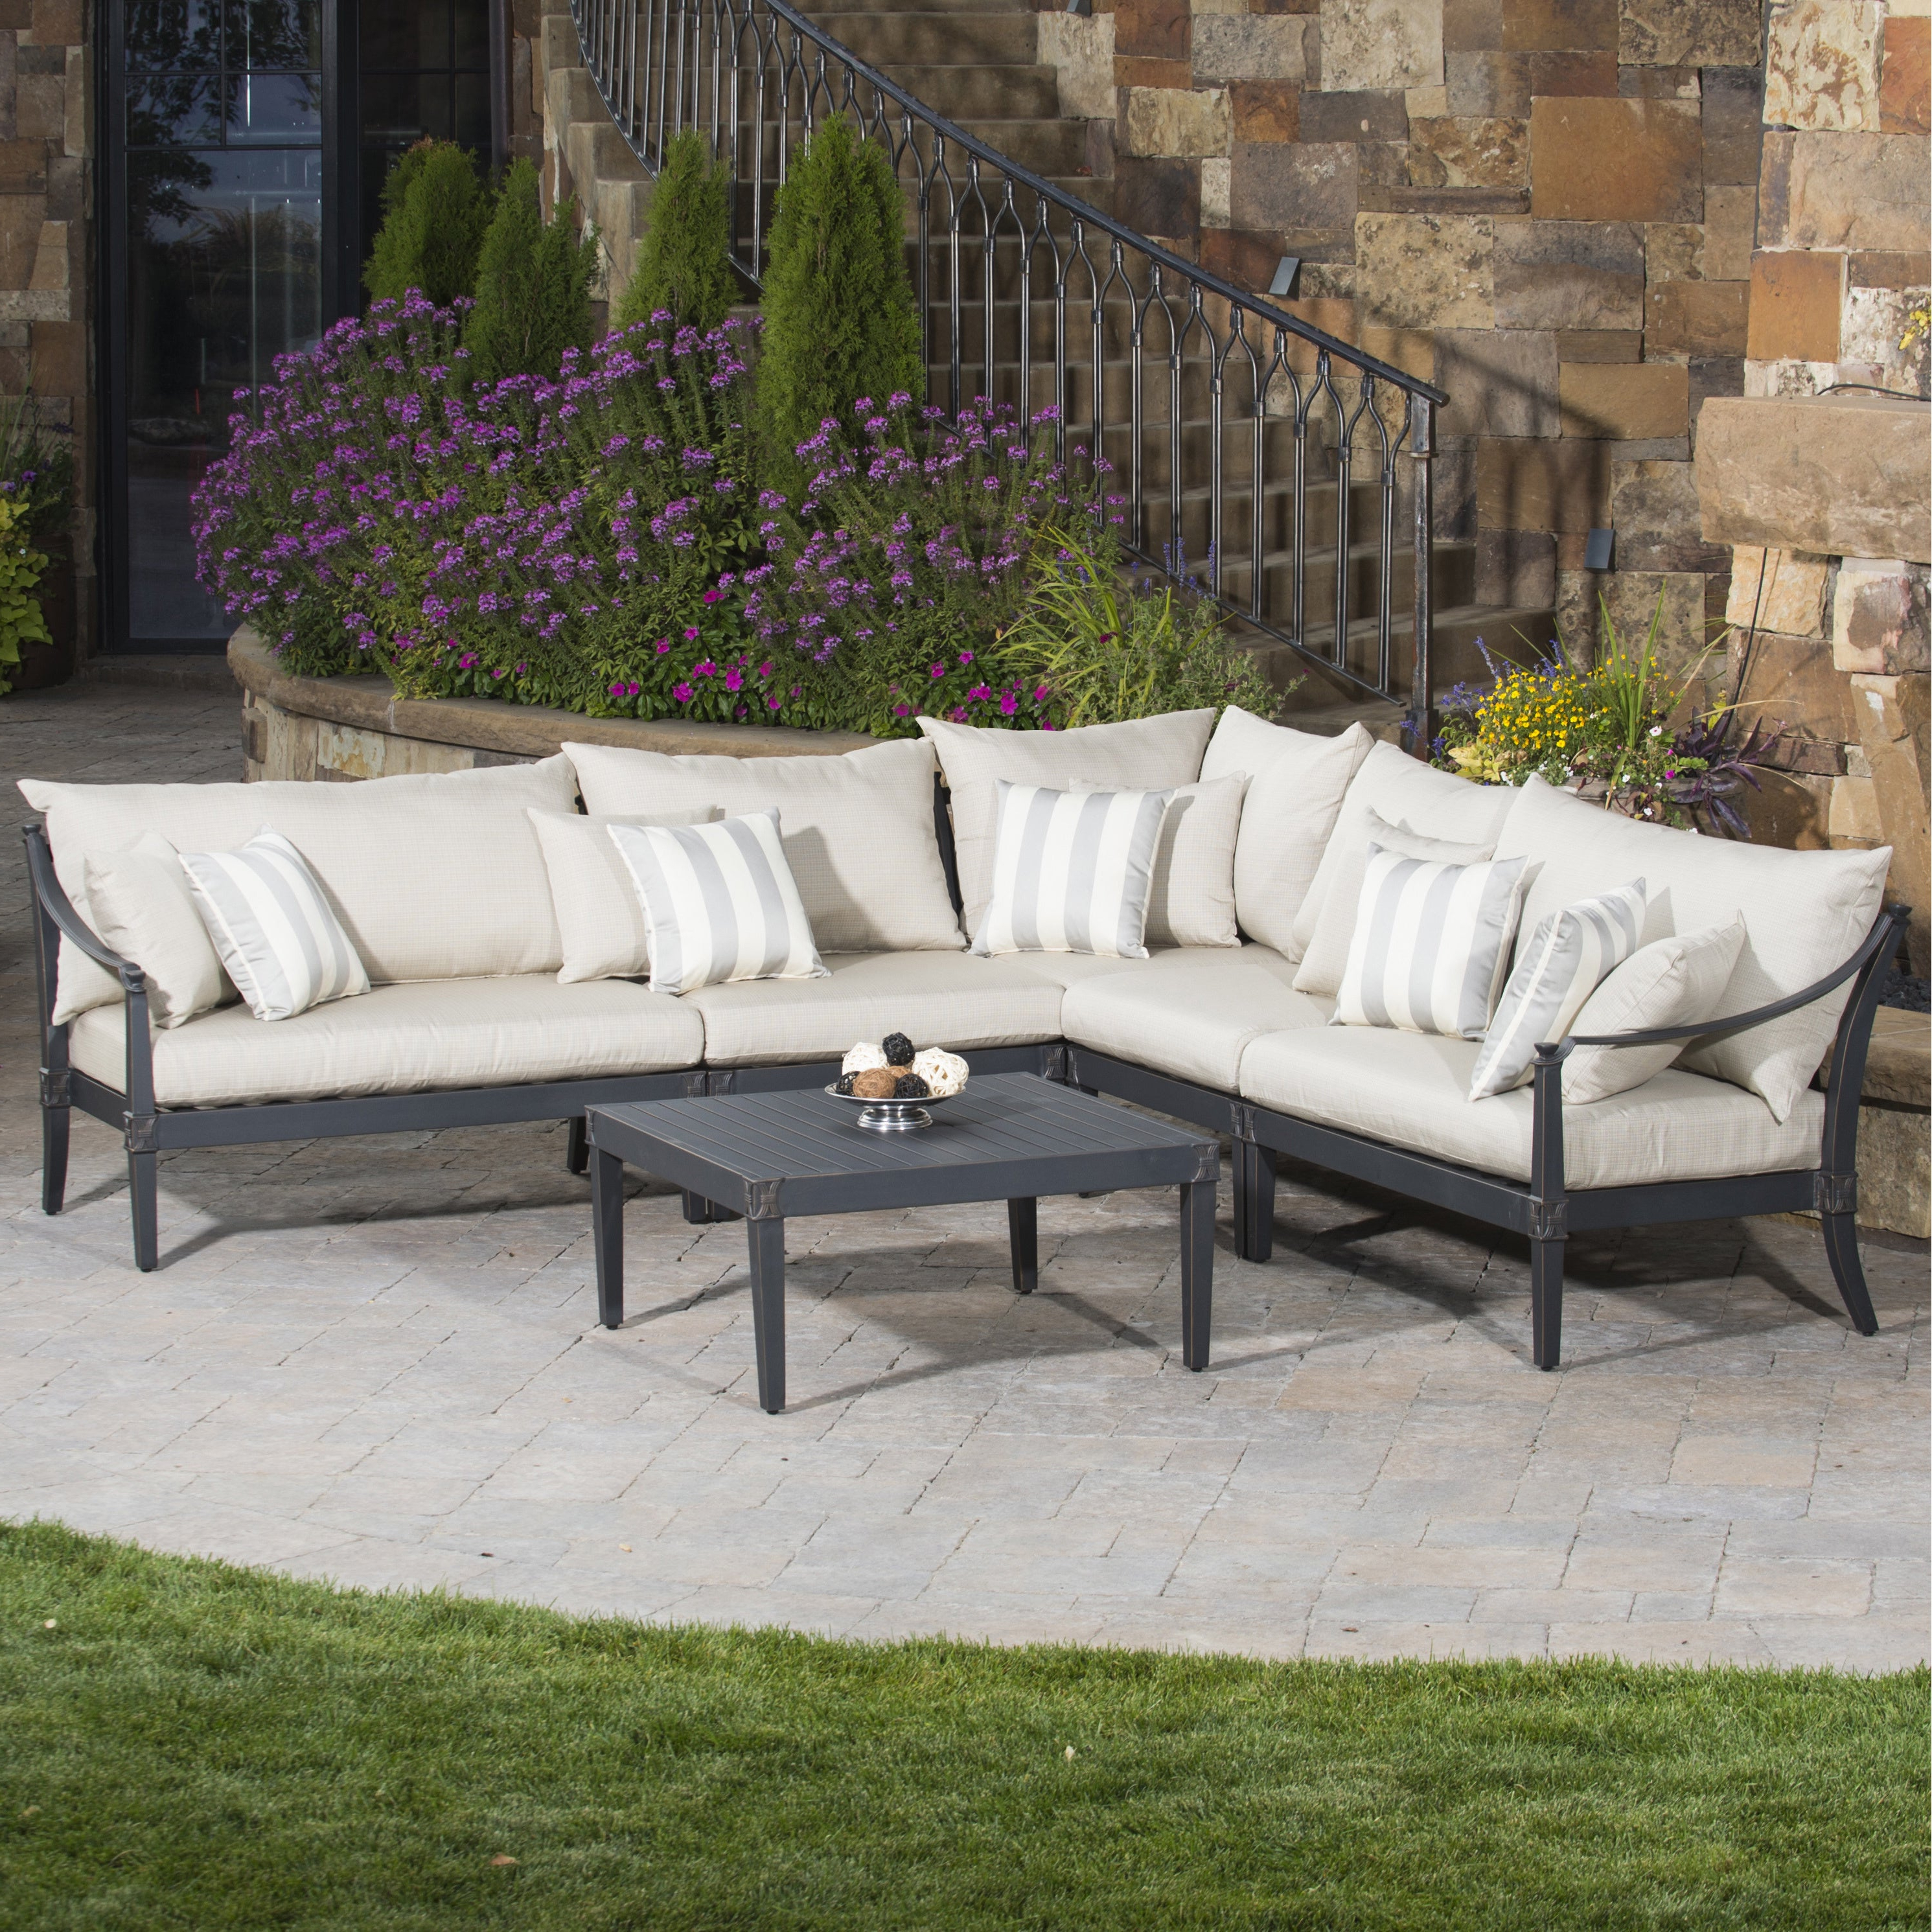 2020 Rst Brands Astoria Aluminum 6 Piece Outdoor Corner Sectional Set With  Cushions Inside Tess Corner Living Patio Sectionals With Cushions (View 1 of 20)